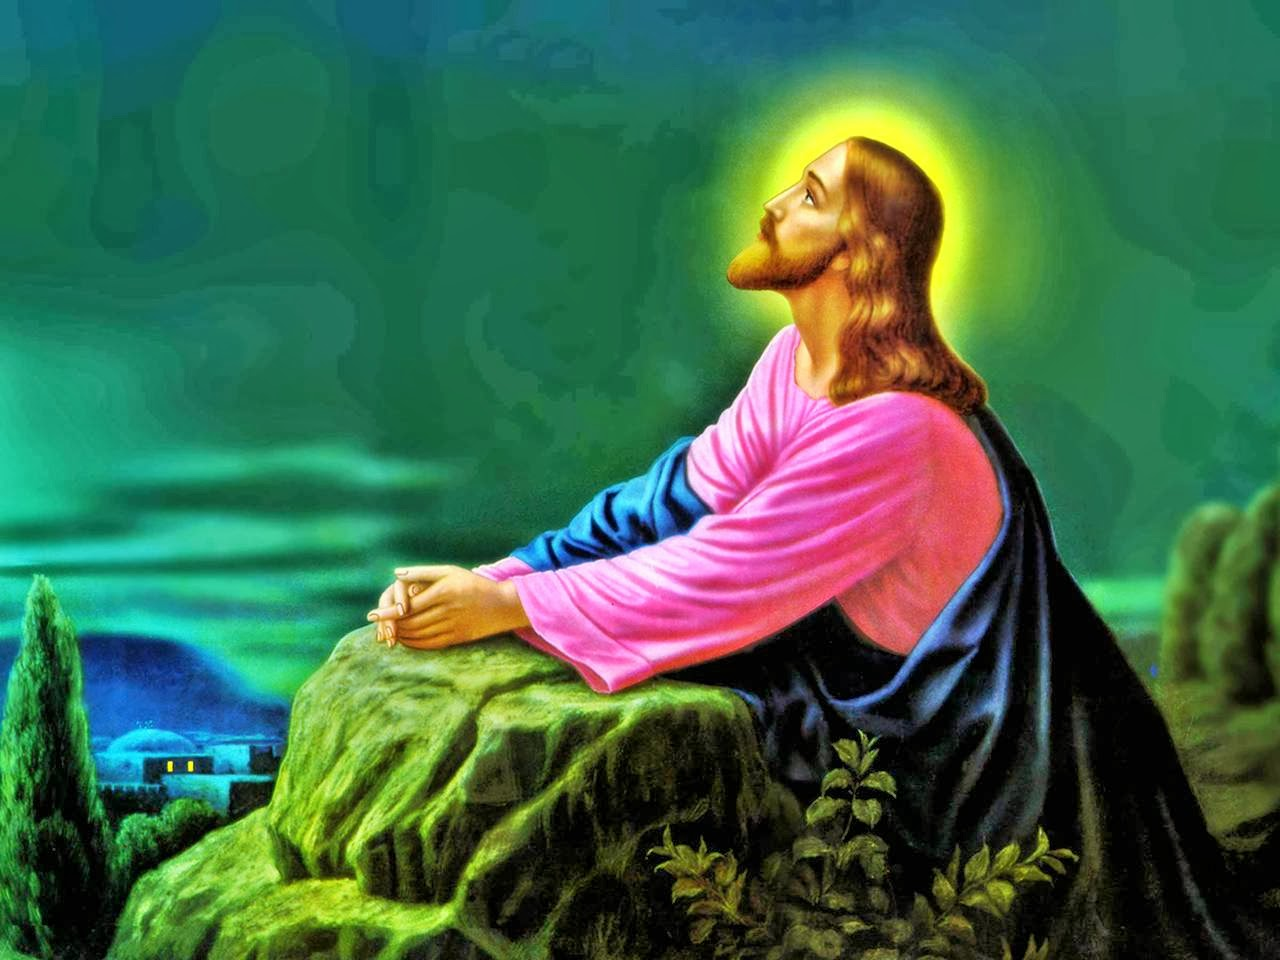 lord jesus wallpapers hd android apps on google play 1280x960